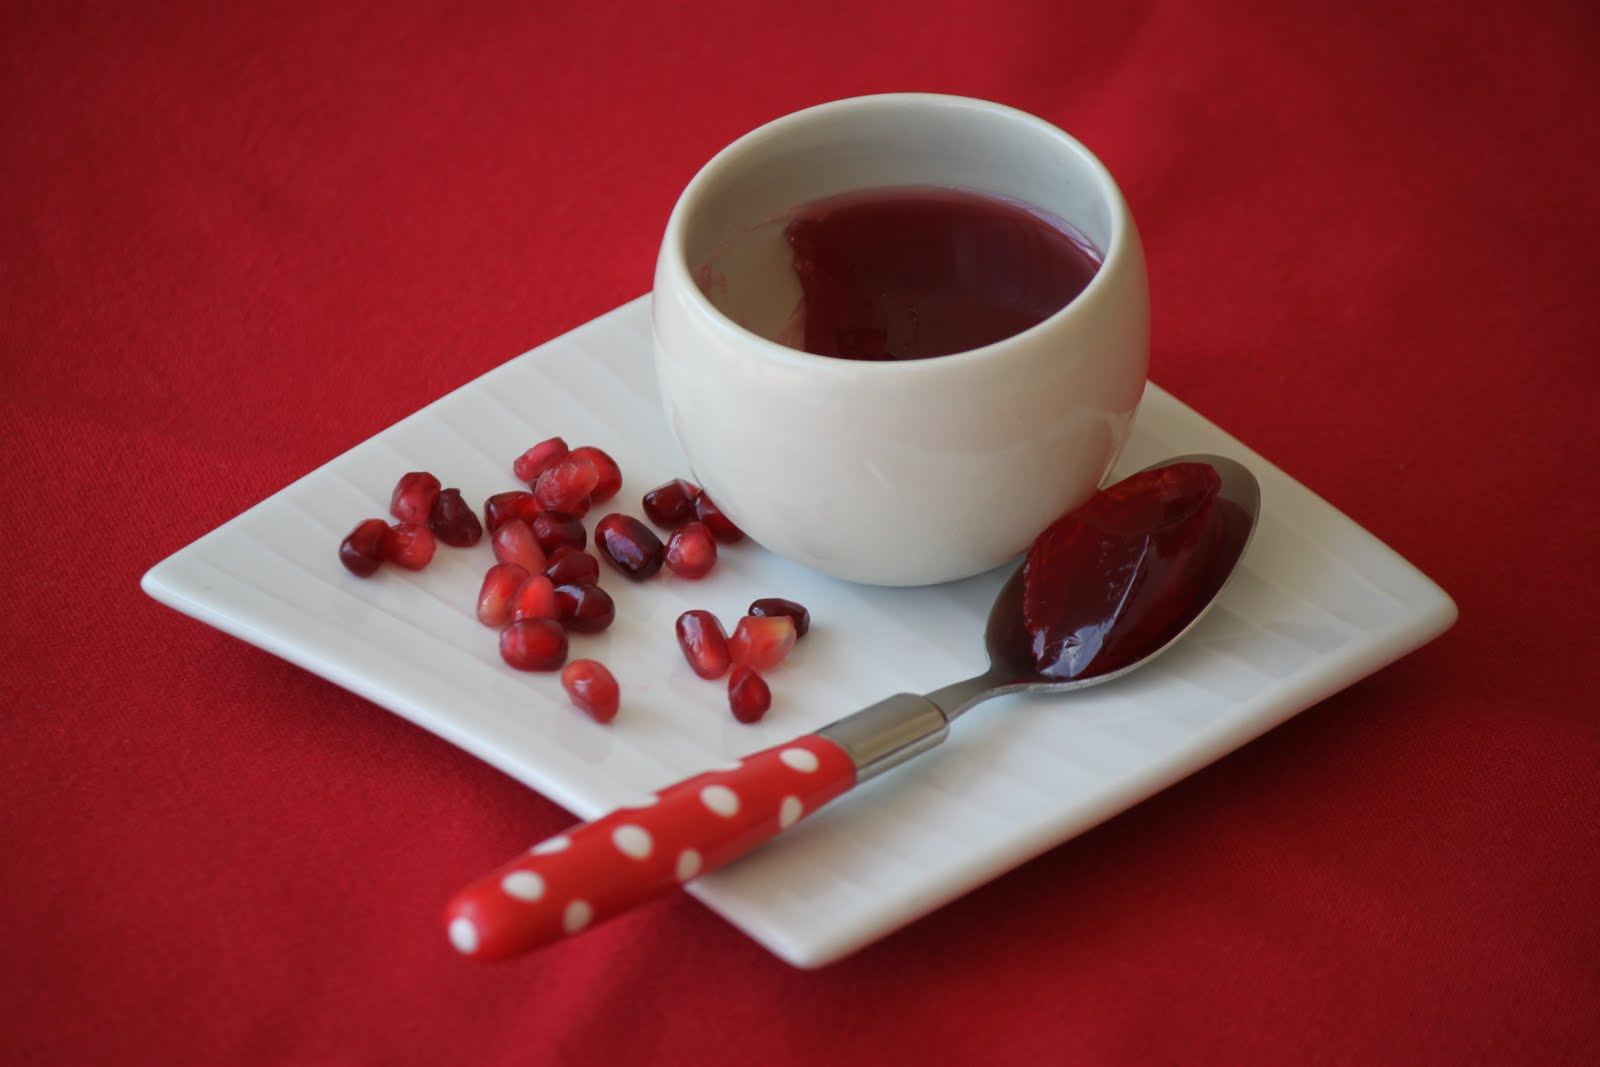 Oscar's Lunch: Cranberry & Pomegranate Jelly (Rainbow Recipes - Red)